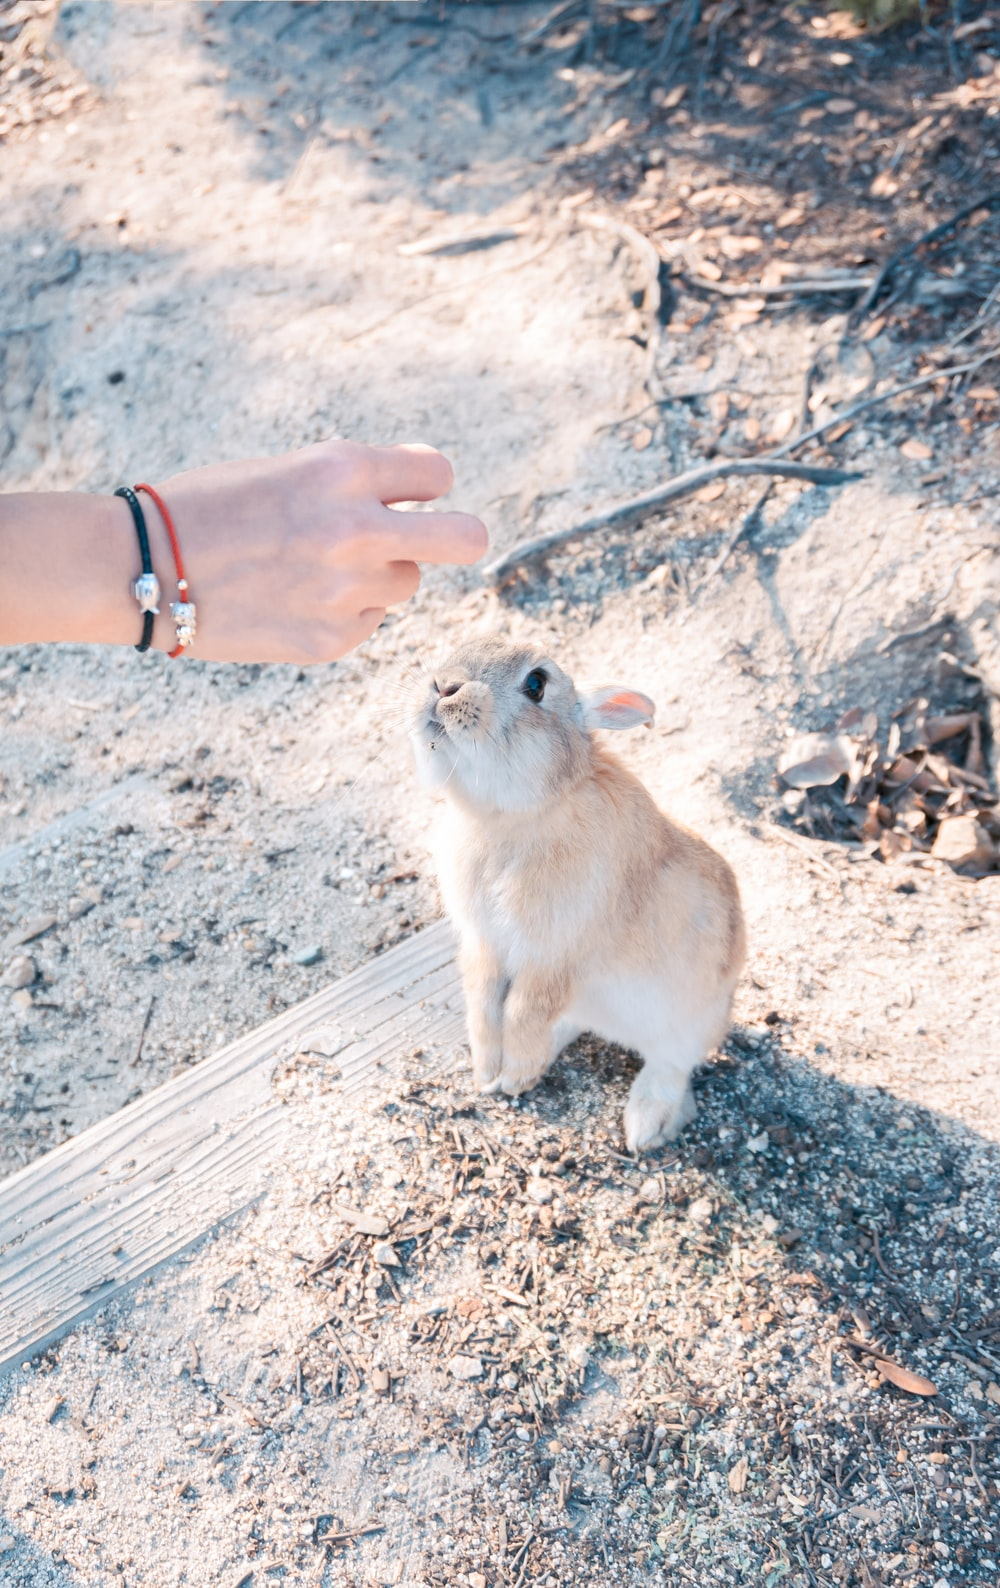 beige bunny near person righ hand